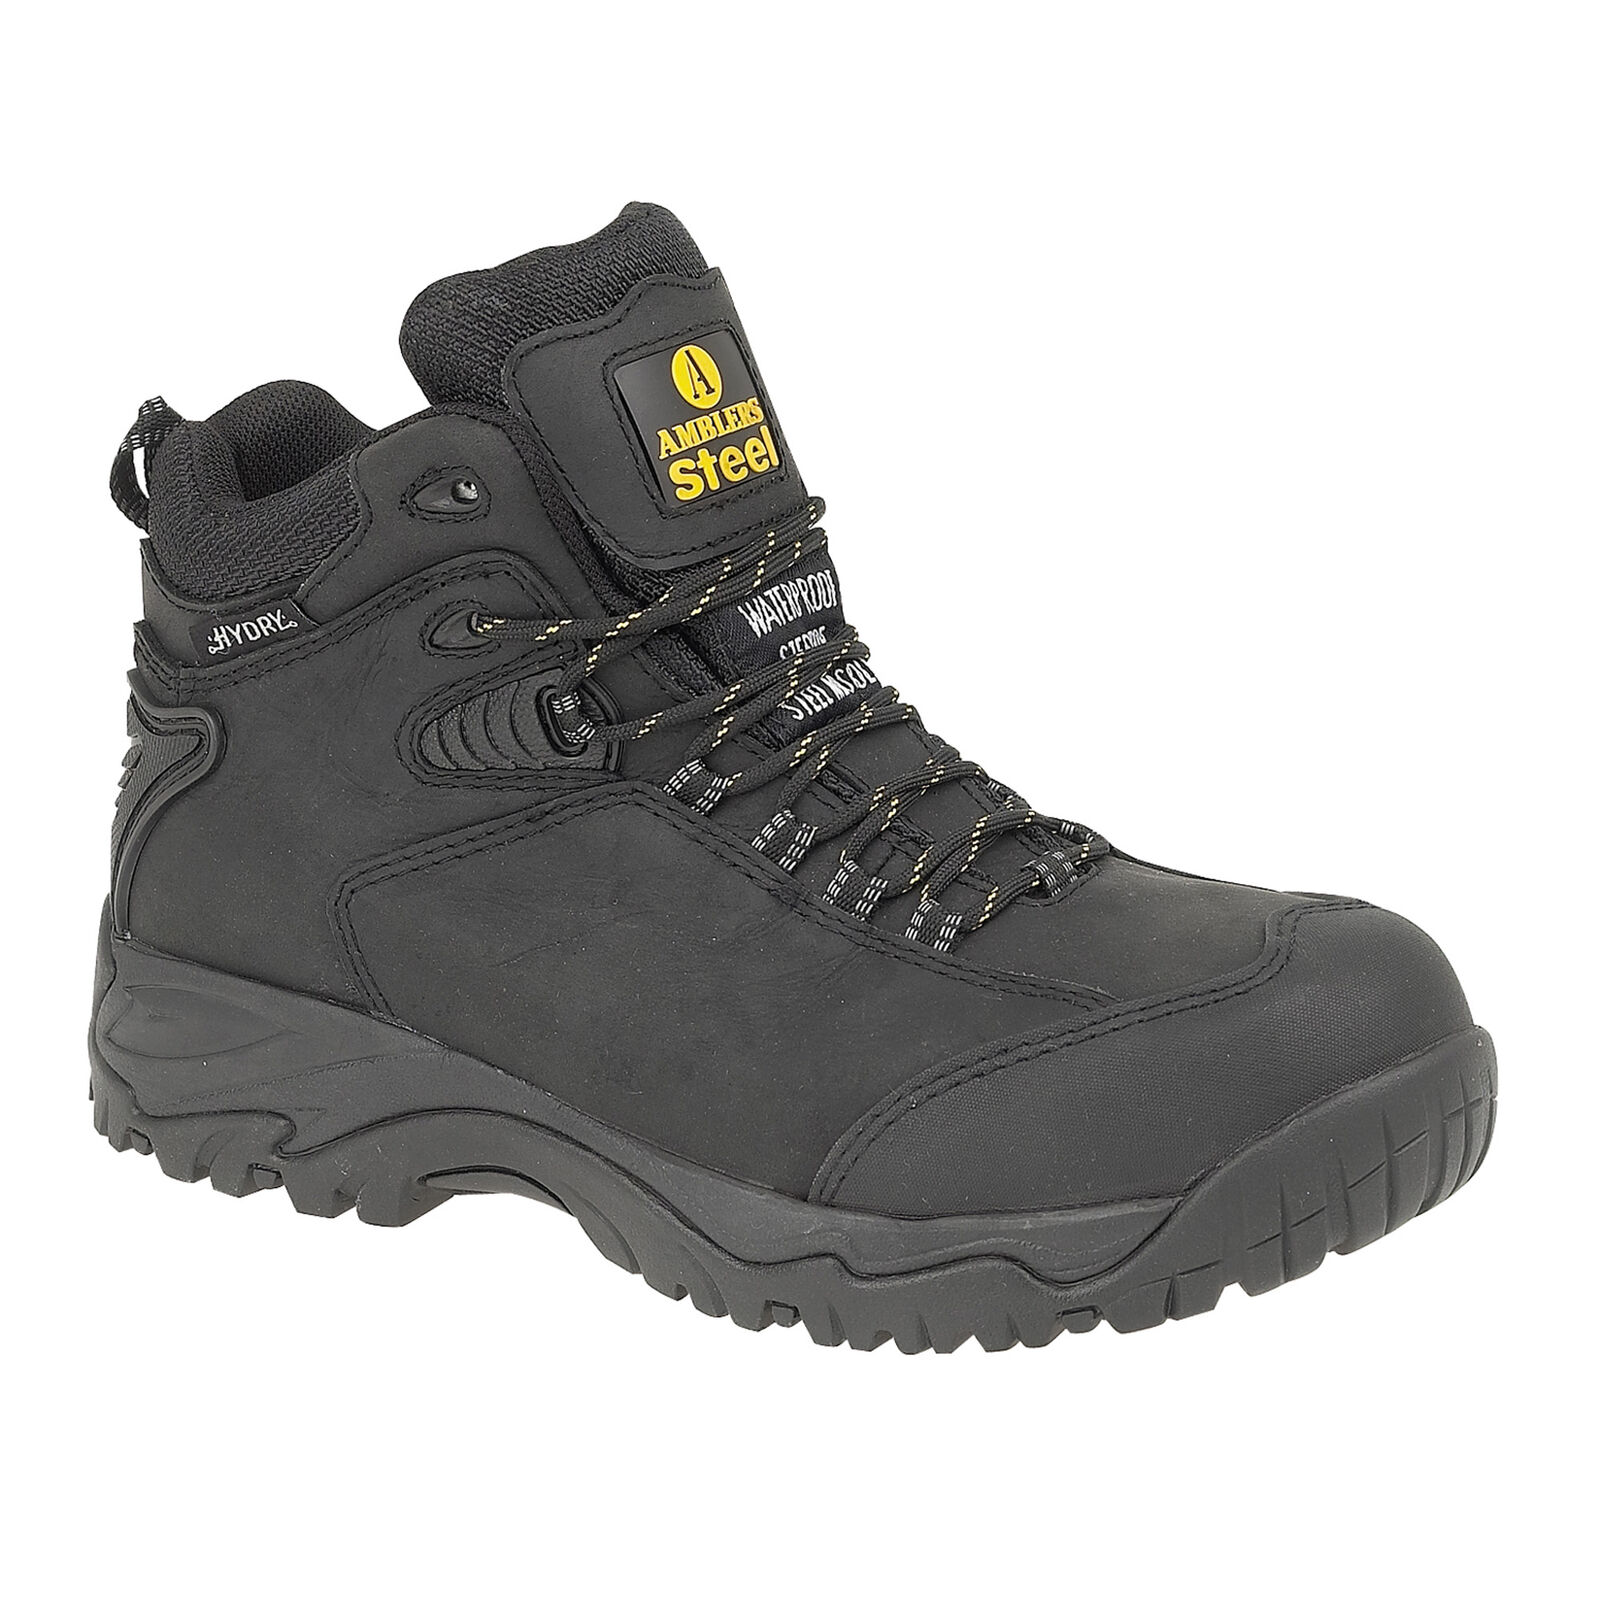 Amblers Steel FS190 Safety Boot - 12319-14409